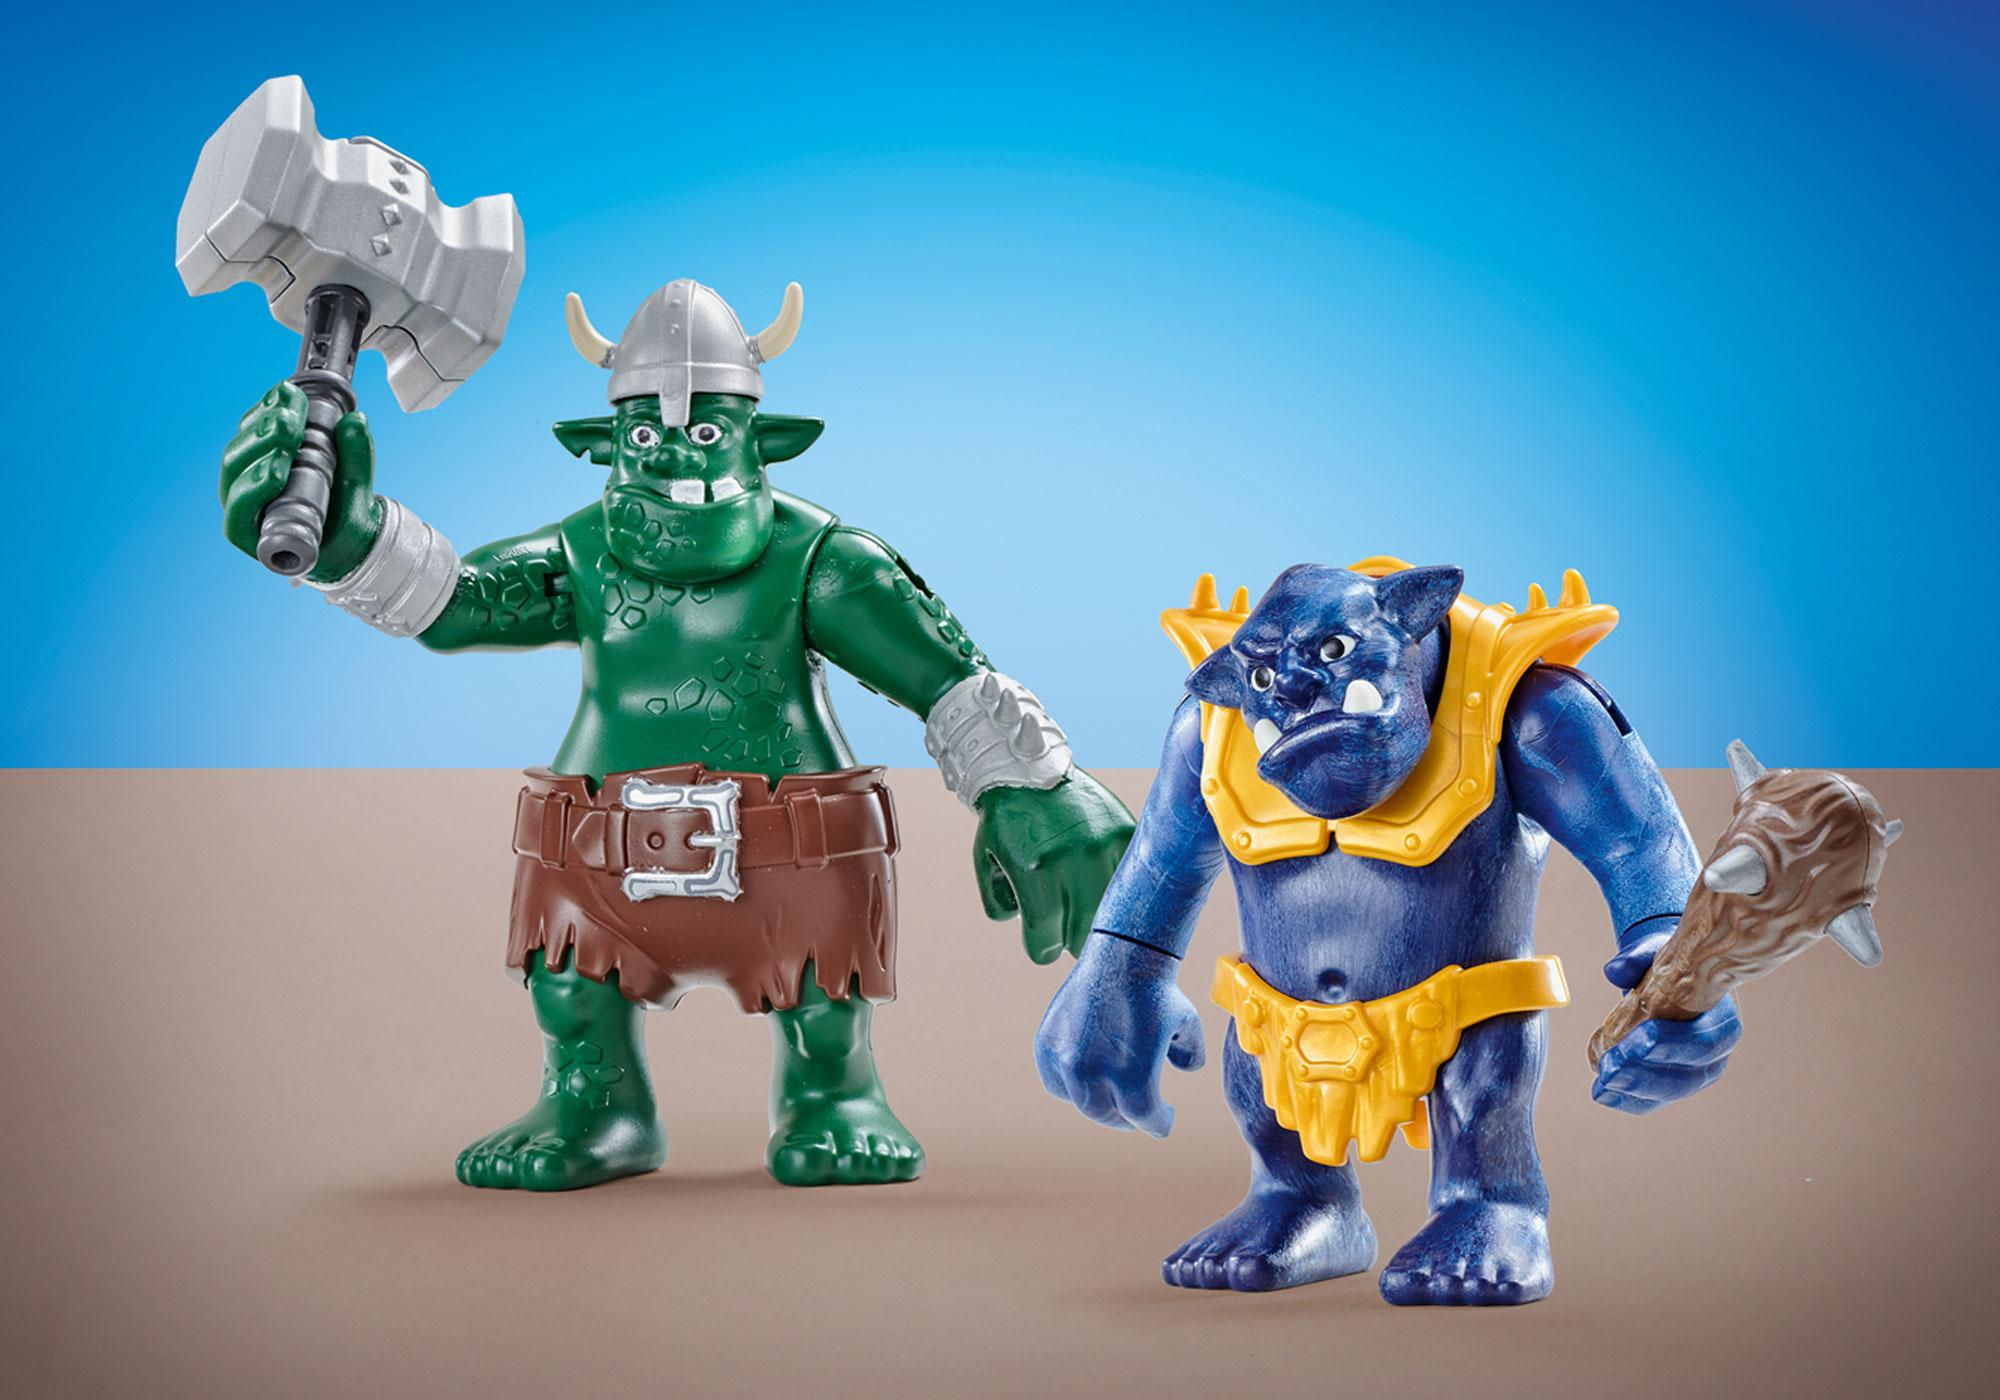 6593_product_detail/Two Giant Trolls